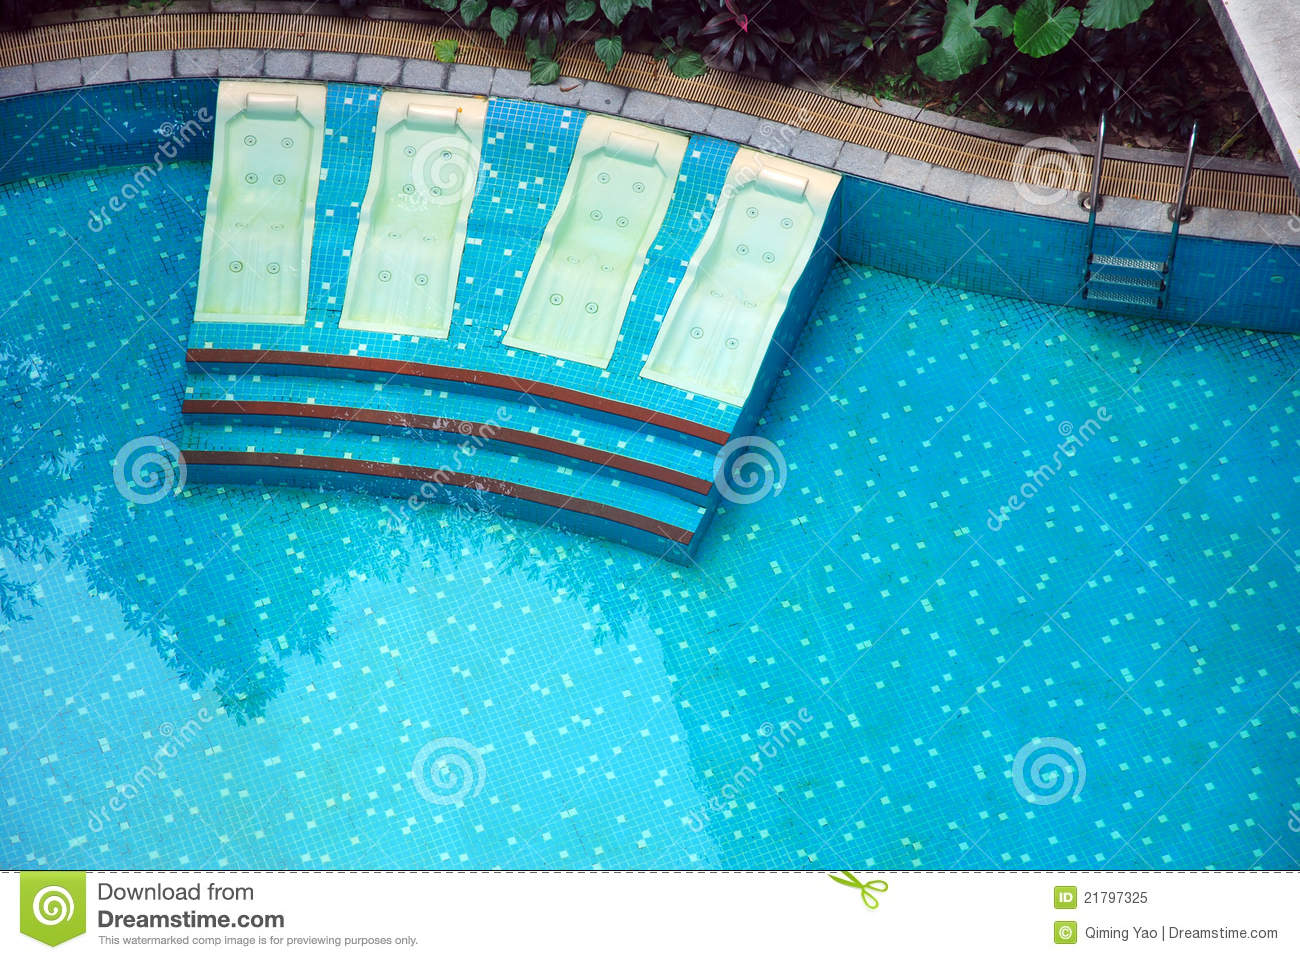 Pool Beds bed and swimming pool royalty free stock photo - image: 21797325